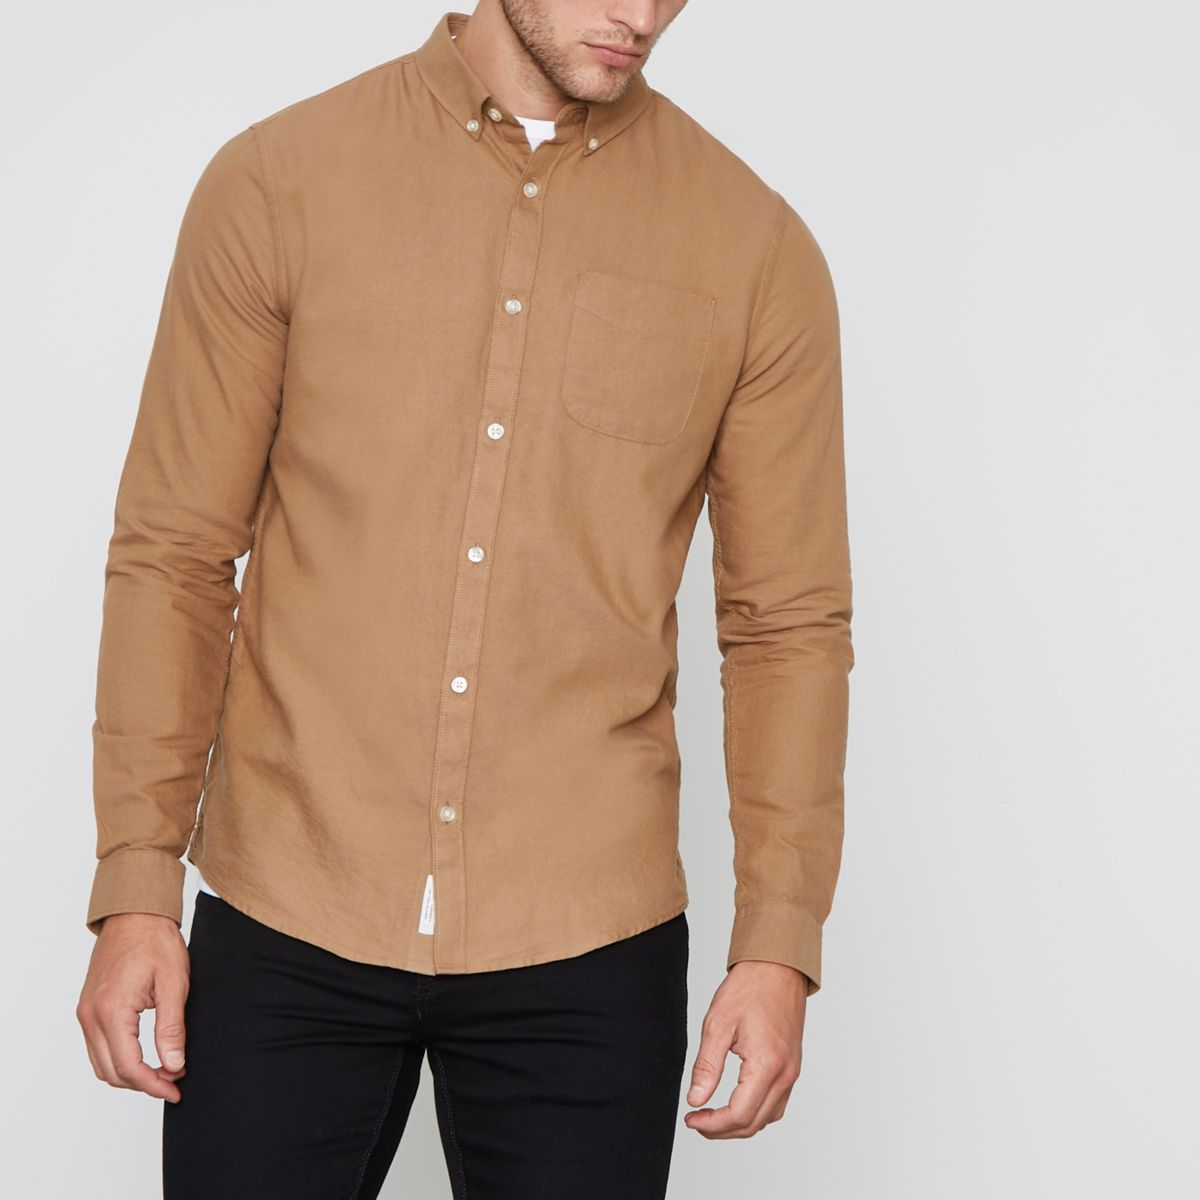 Brown button-down casual Oxford shirt - Long Sleeve Shirts ...